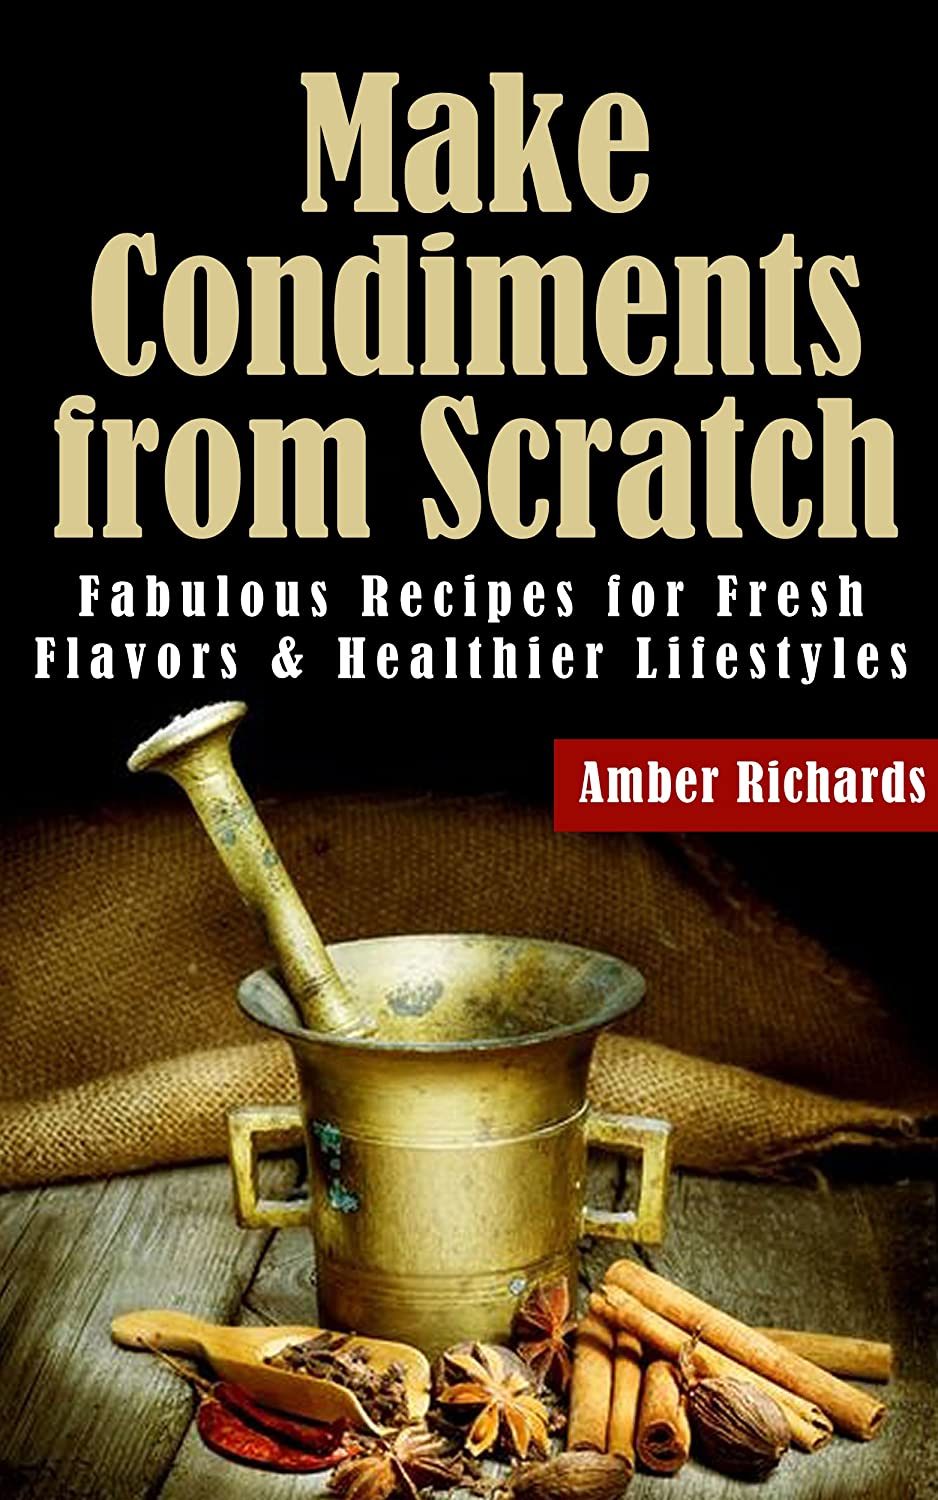 http://www.amazon.com/Make-Condiments-Scratch-Healthier-Lifestyles-ebook/dp/B00LYKTFU6/ref=as_sl_pc_ss_til?tag=lettfromahome-20&linkCode=w01&linkId=HCQUMZO2TNUJ5UT6&creativeASIN=B00LYKTFU6